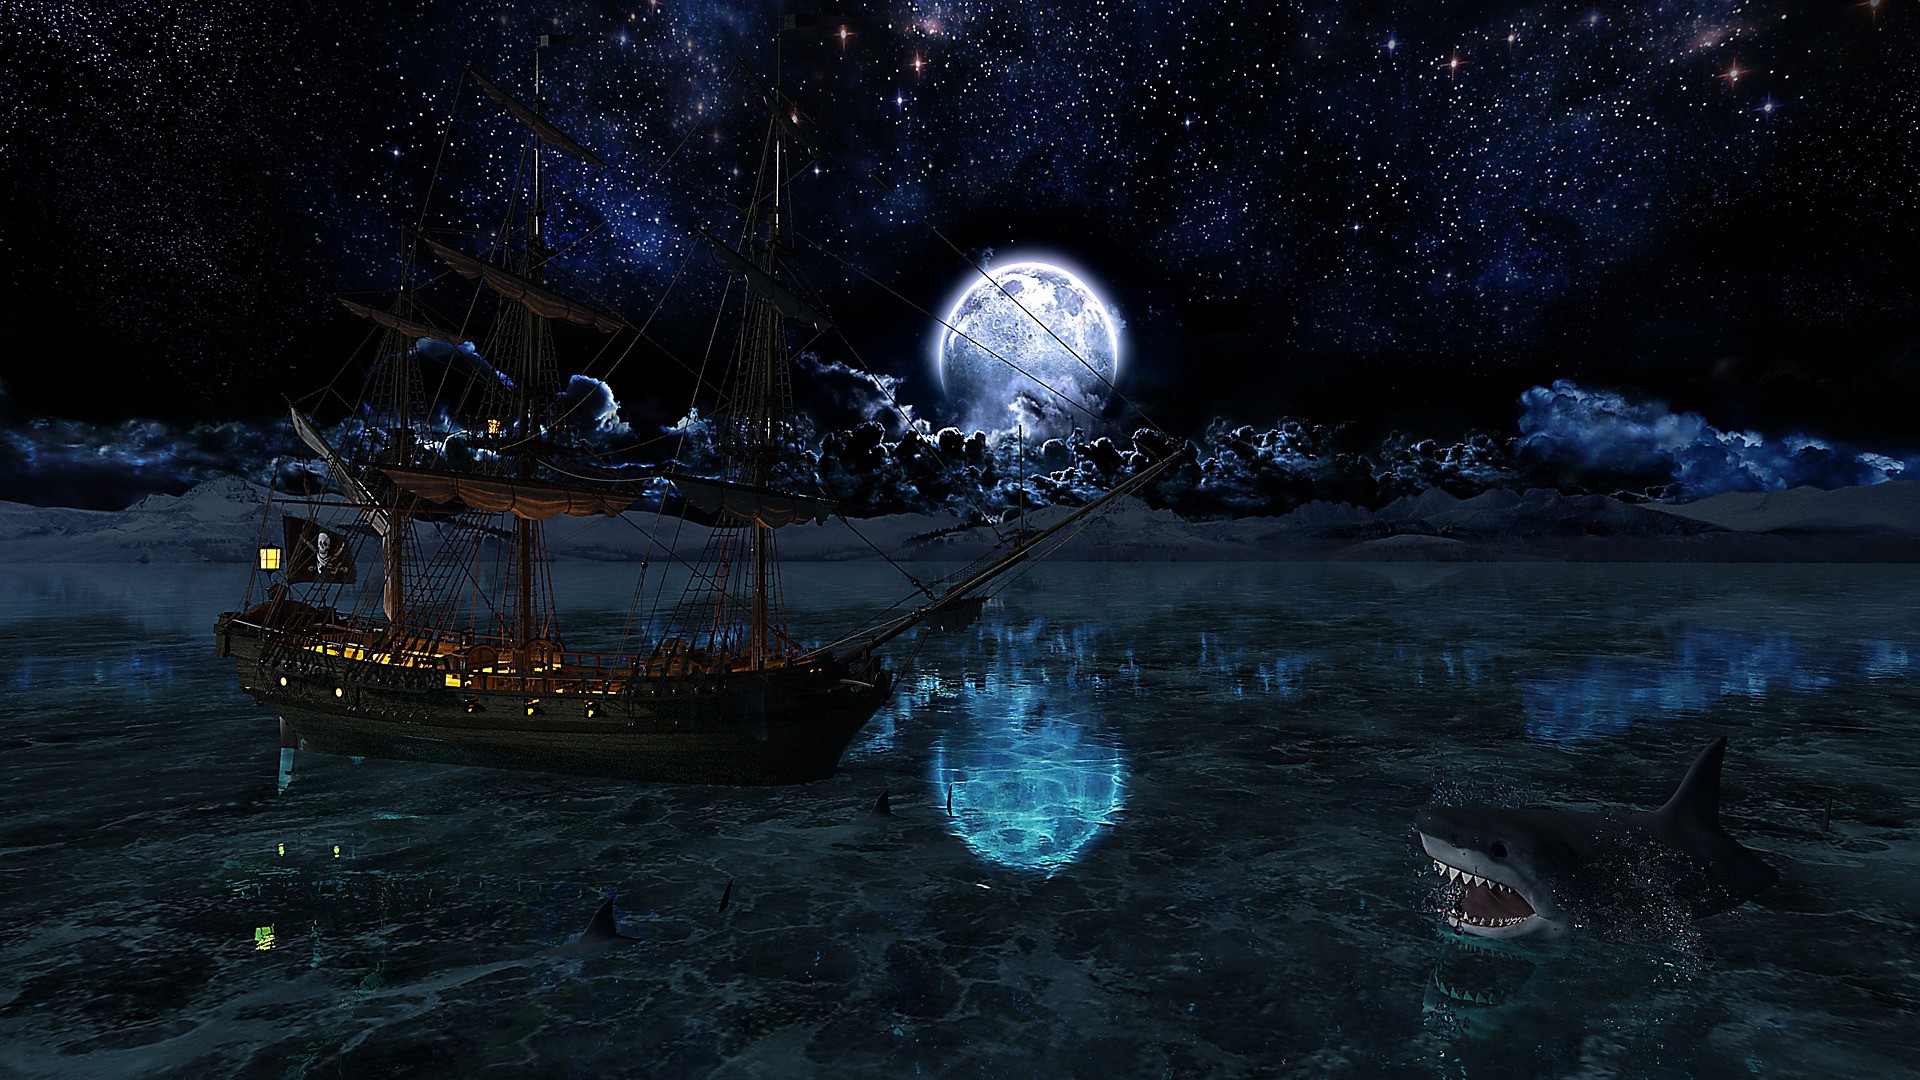 Pirate ship flying a skull-n-crossbones flag asail on a dimly moonlit sea while a shark awaits at right bottom foreground with gaping teeth.